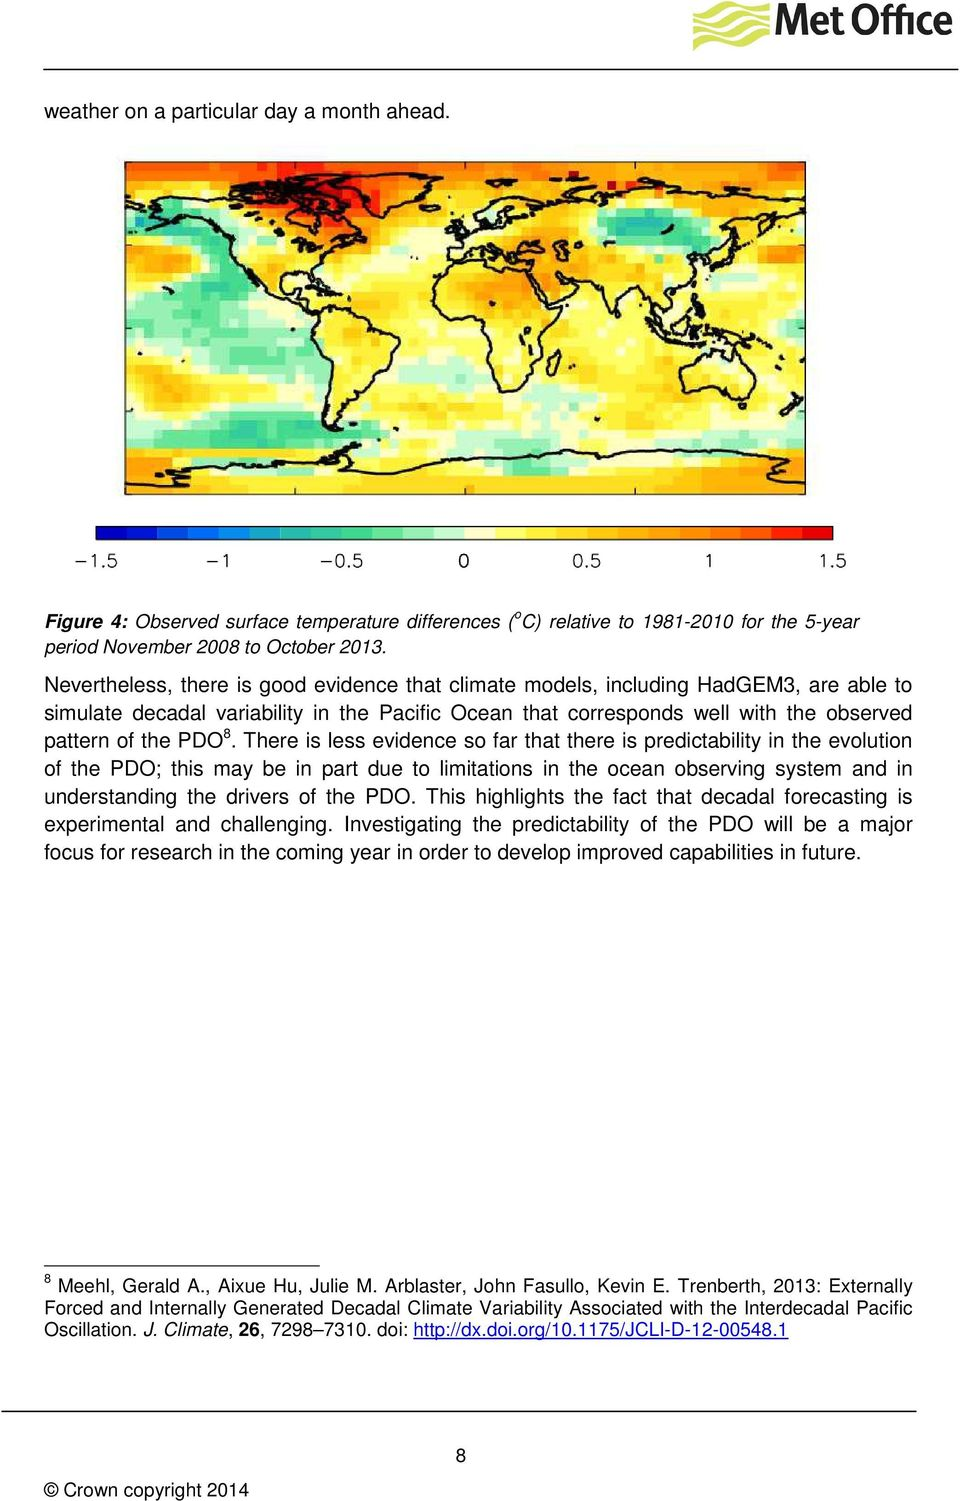 There is less evidence so far that there is predictability in the evolution of the PDO; this may be in part due to limitations in the ocean observing system and in understanding the drivers of the